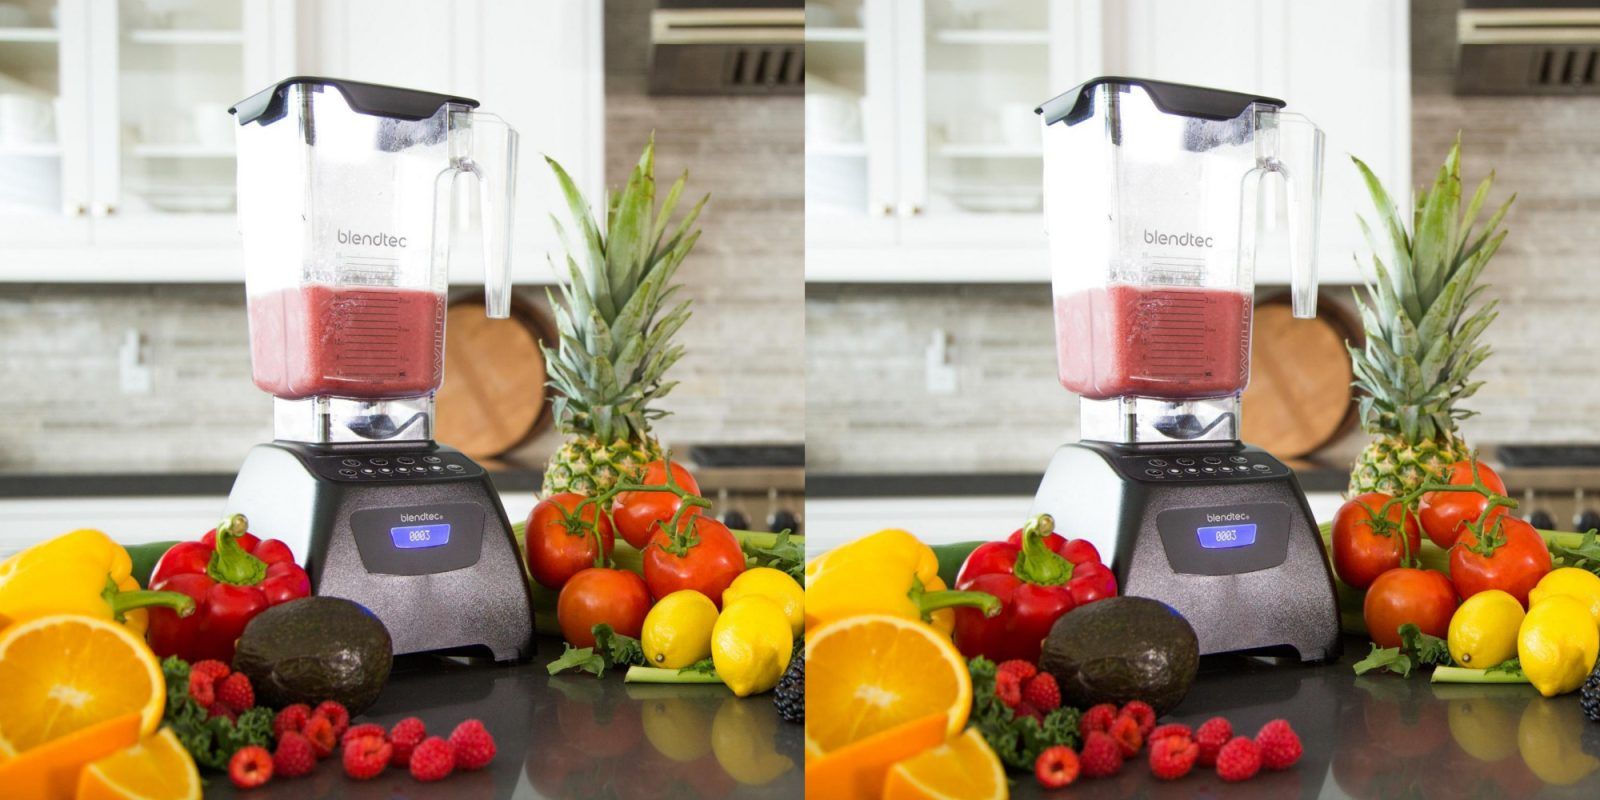 Amazon offers up to $160 off Blendtec Blenders today, deals from $200 shipped